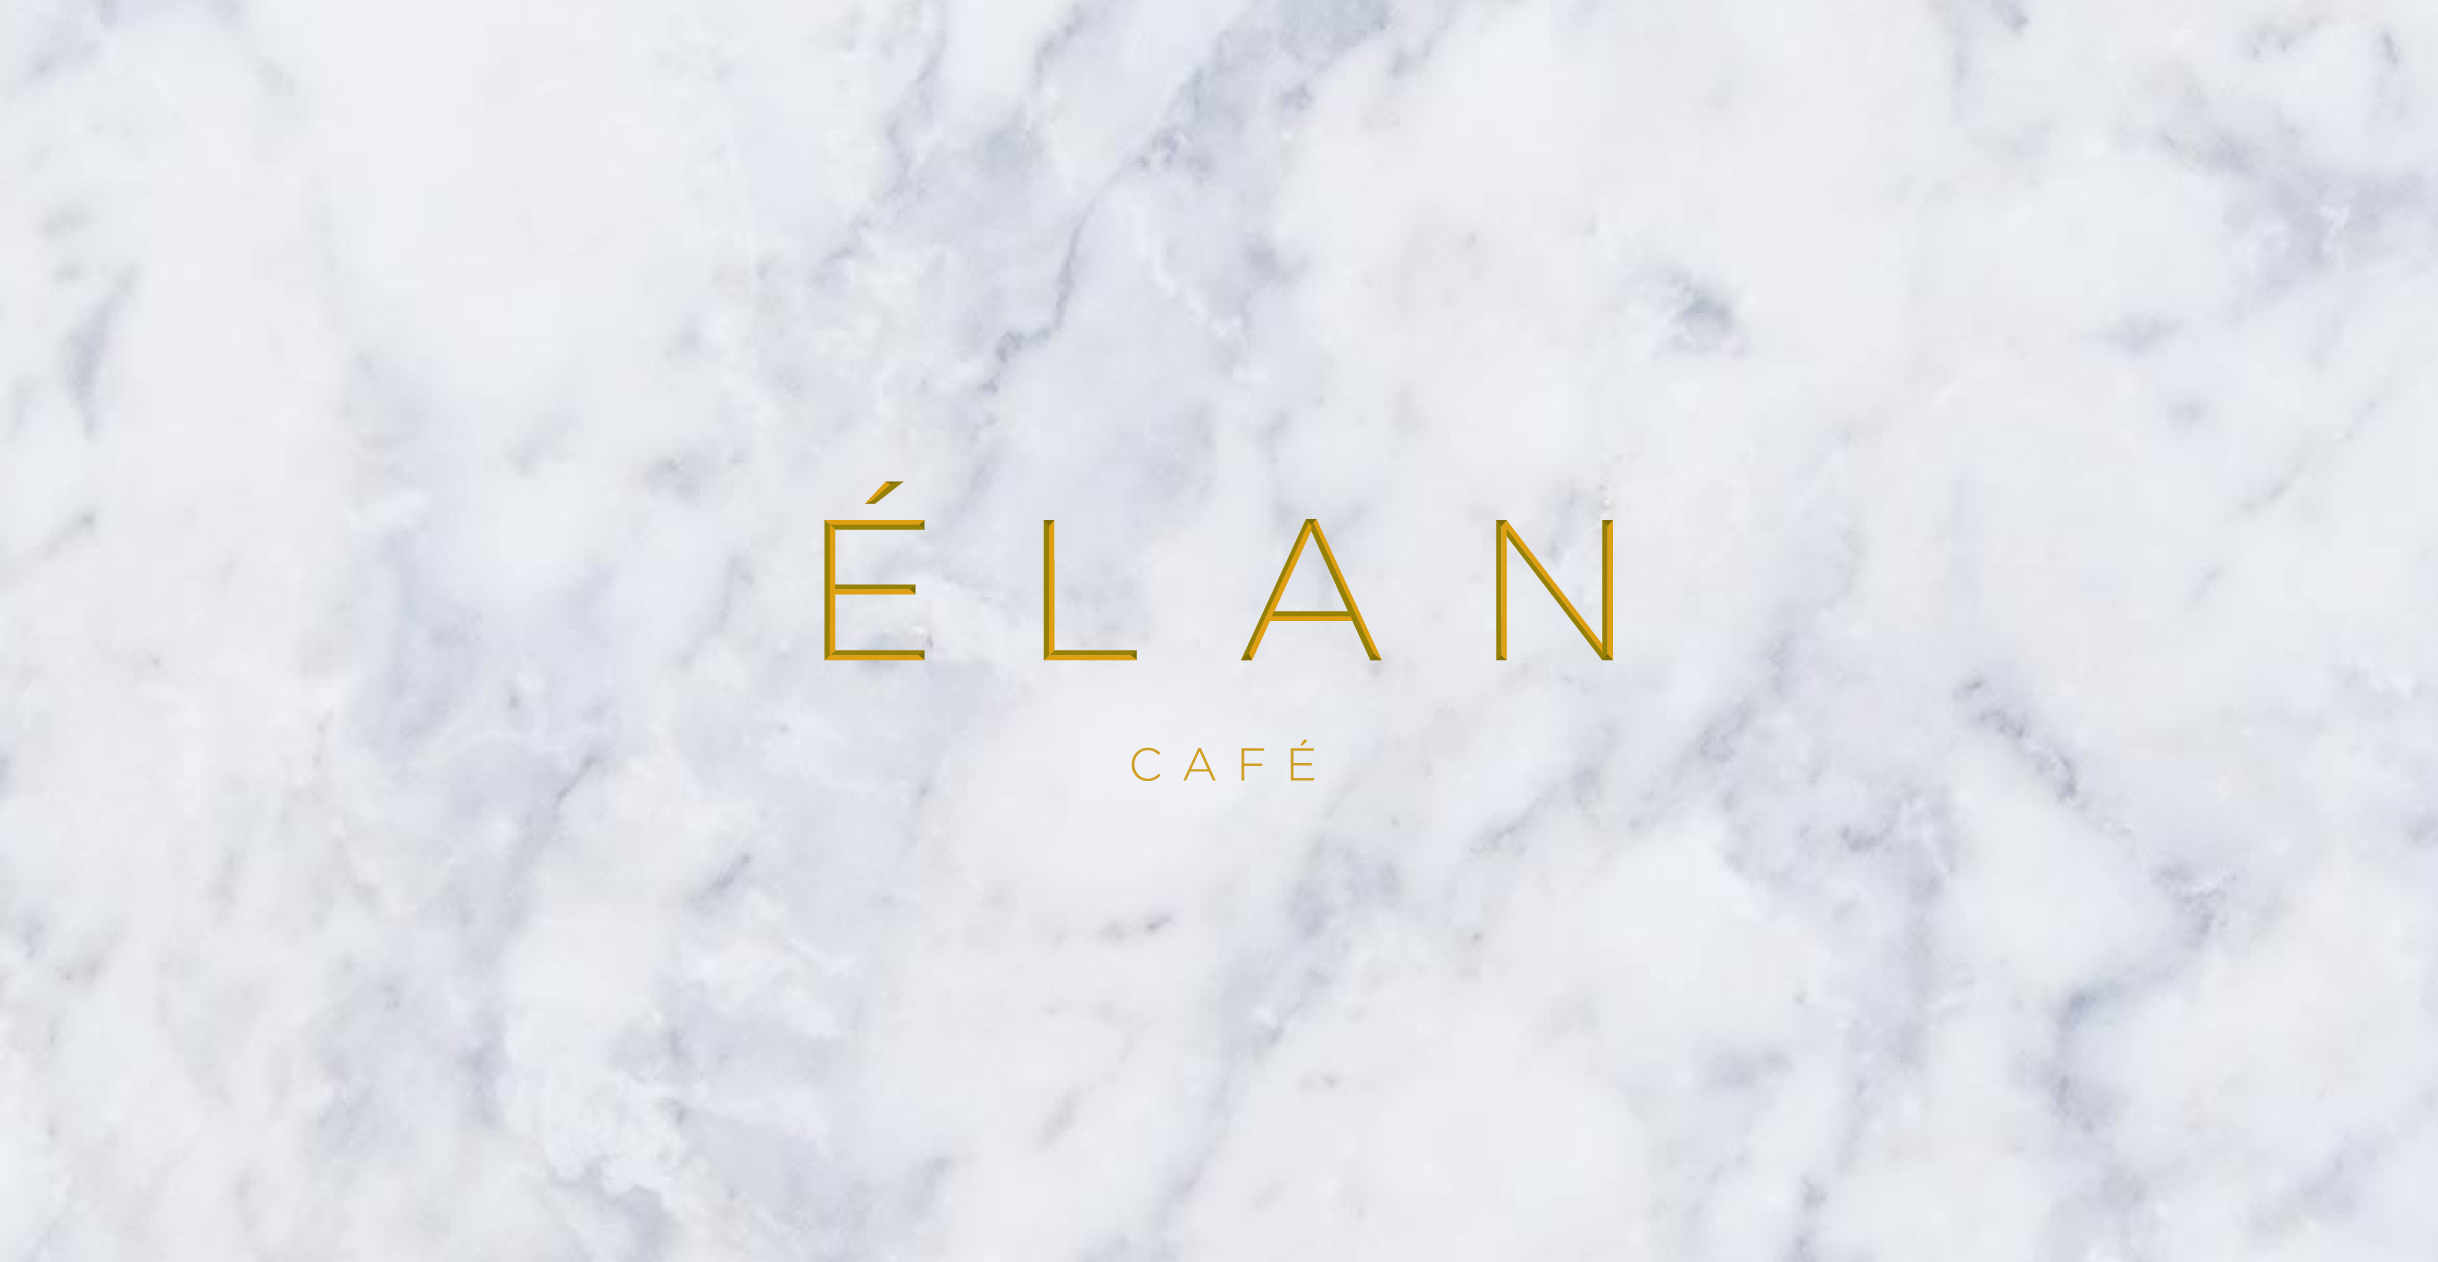 Elan Café logo on a marble background